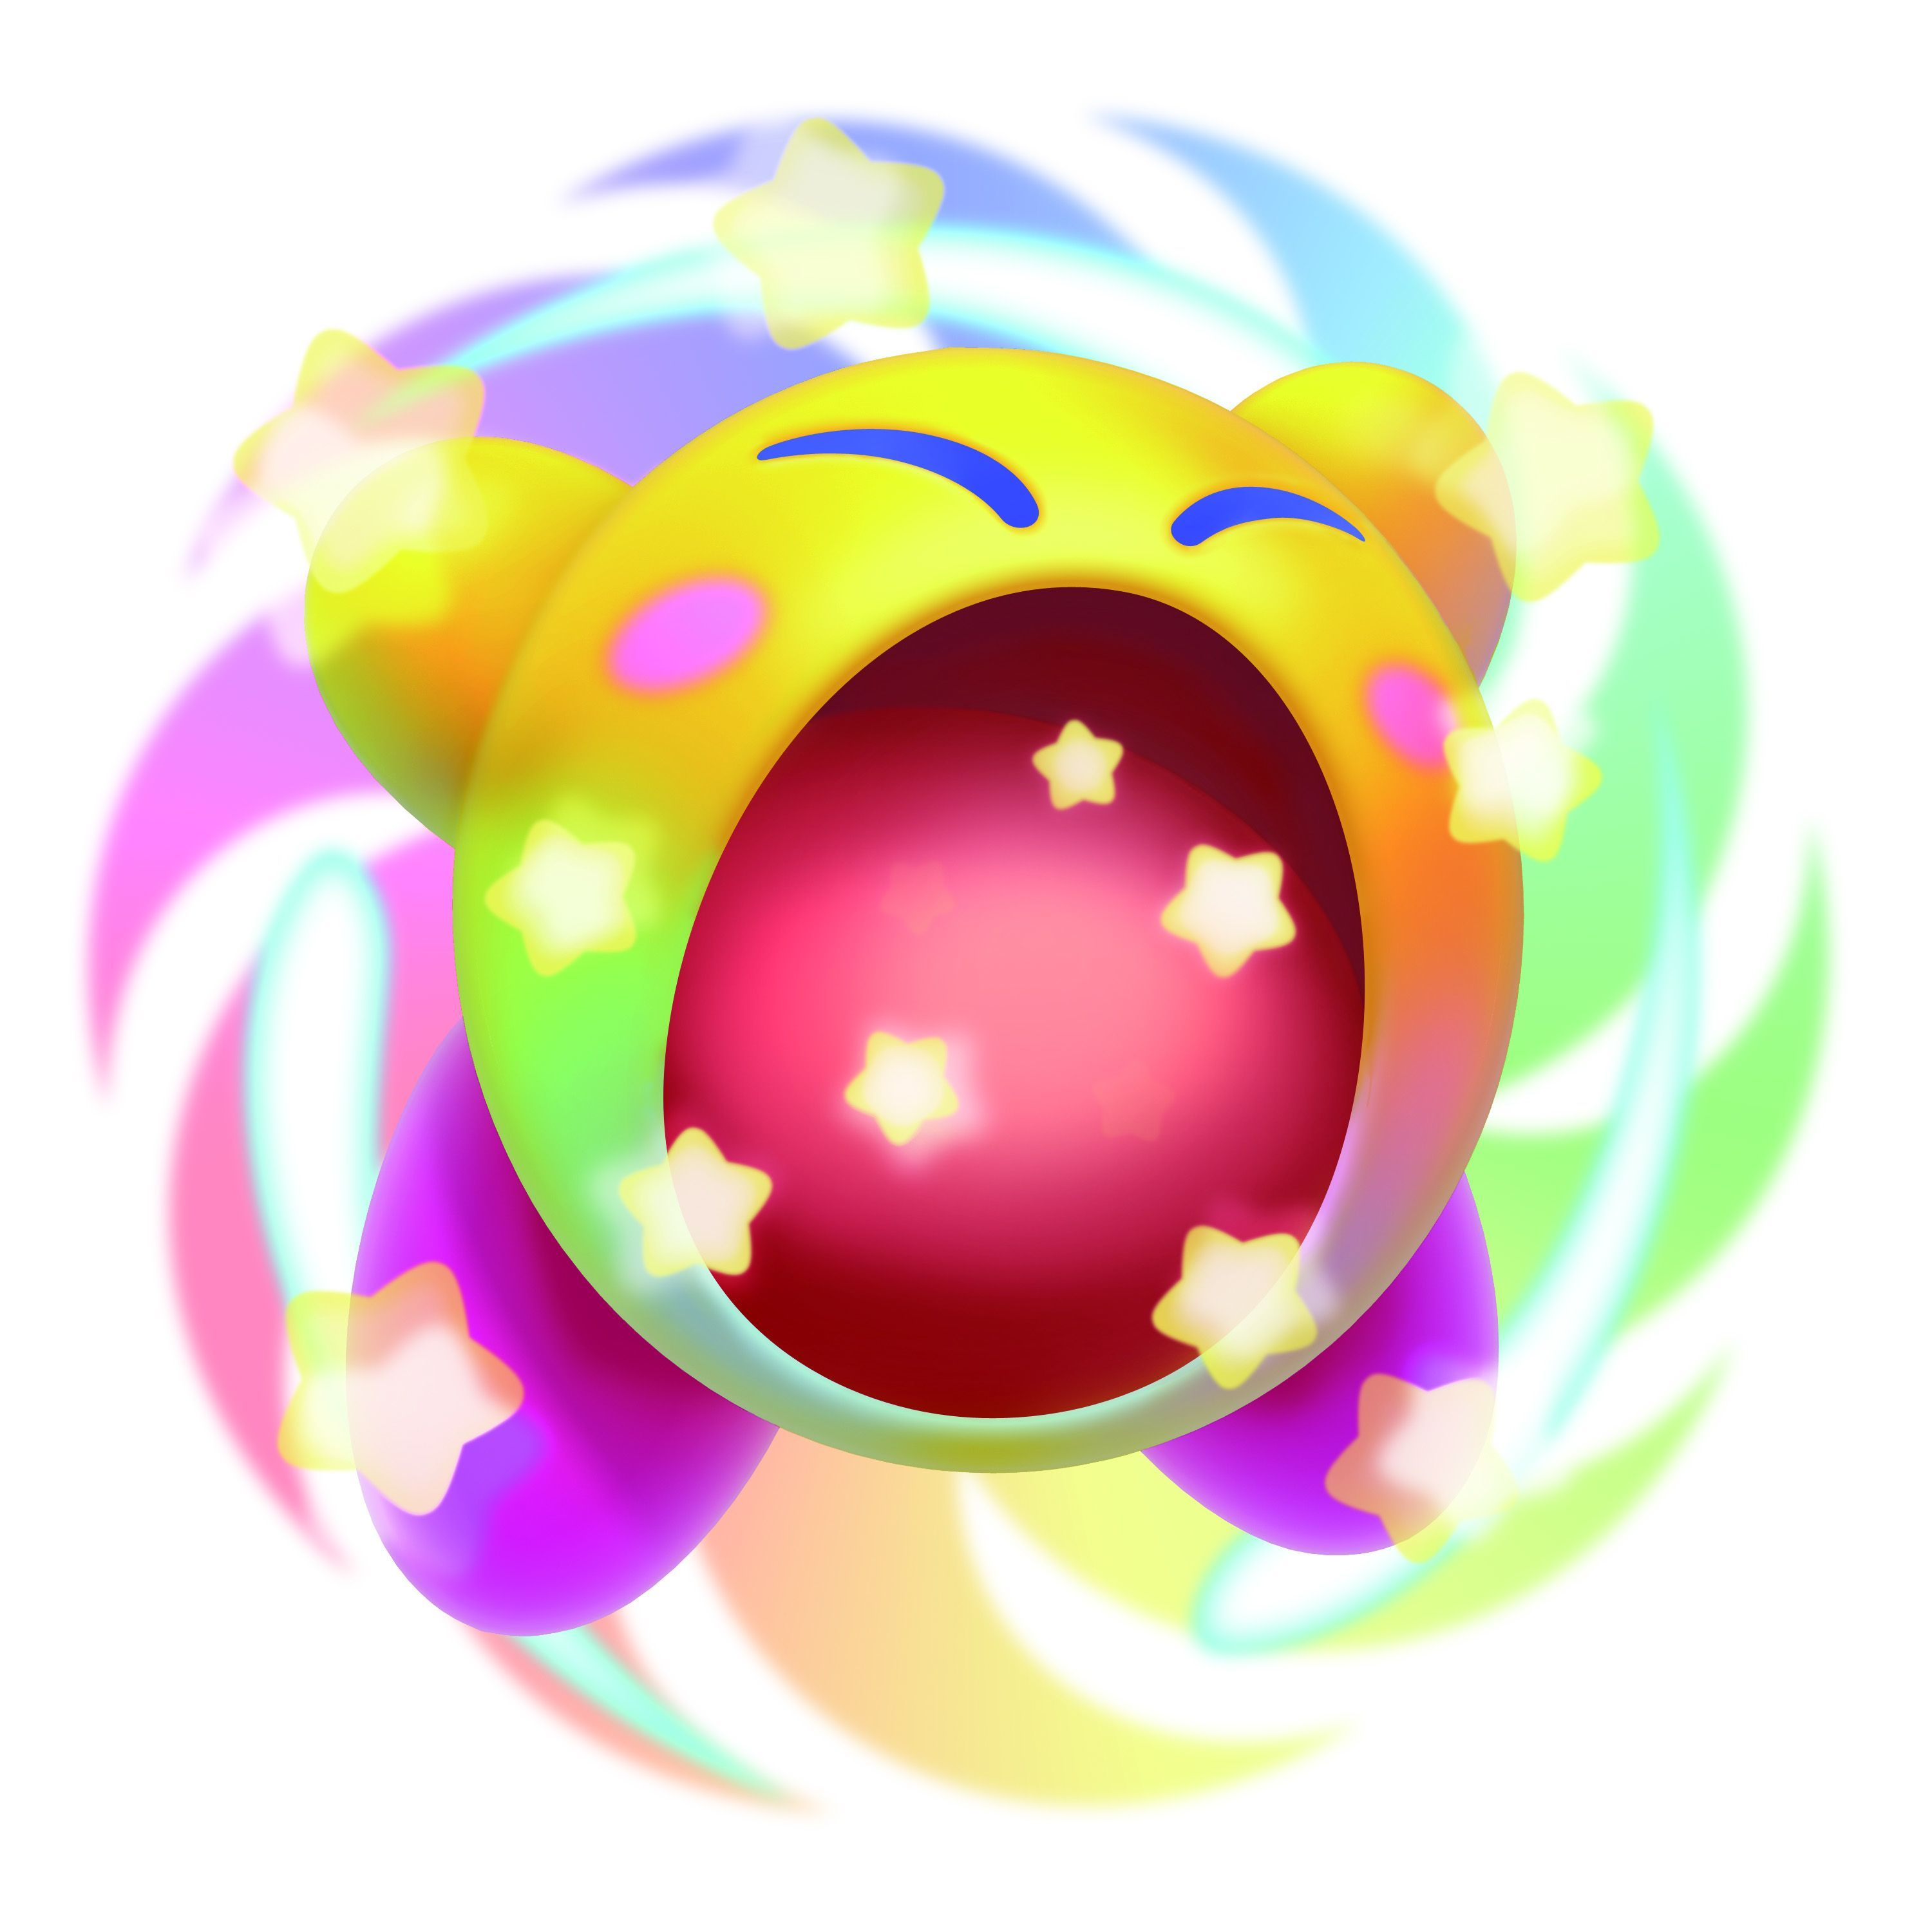 New to the Kirby series and a highlight of Kirby: Triple Deluxe is Kirby's new, dramatic Hypernova ability. After collecting Miracle Fruit, Kirby will be imbued with the ability to inhale almost anything that stands in his way, including massive obstacles and entire sections of levels. (Photo: Business Wire)